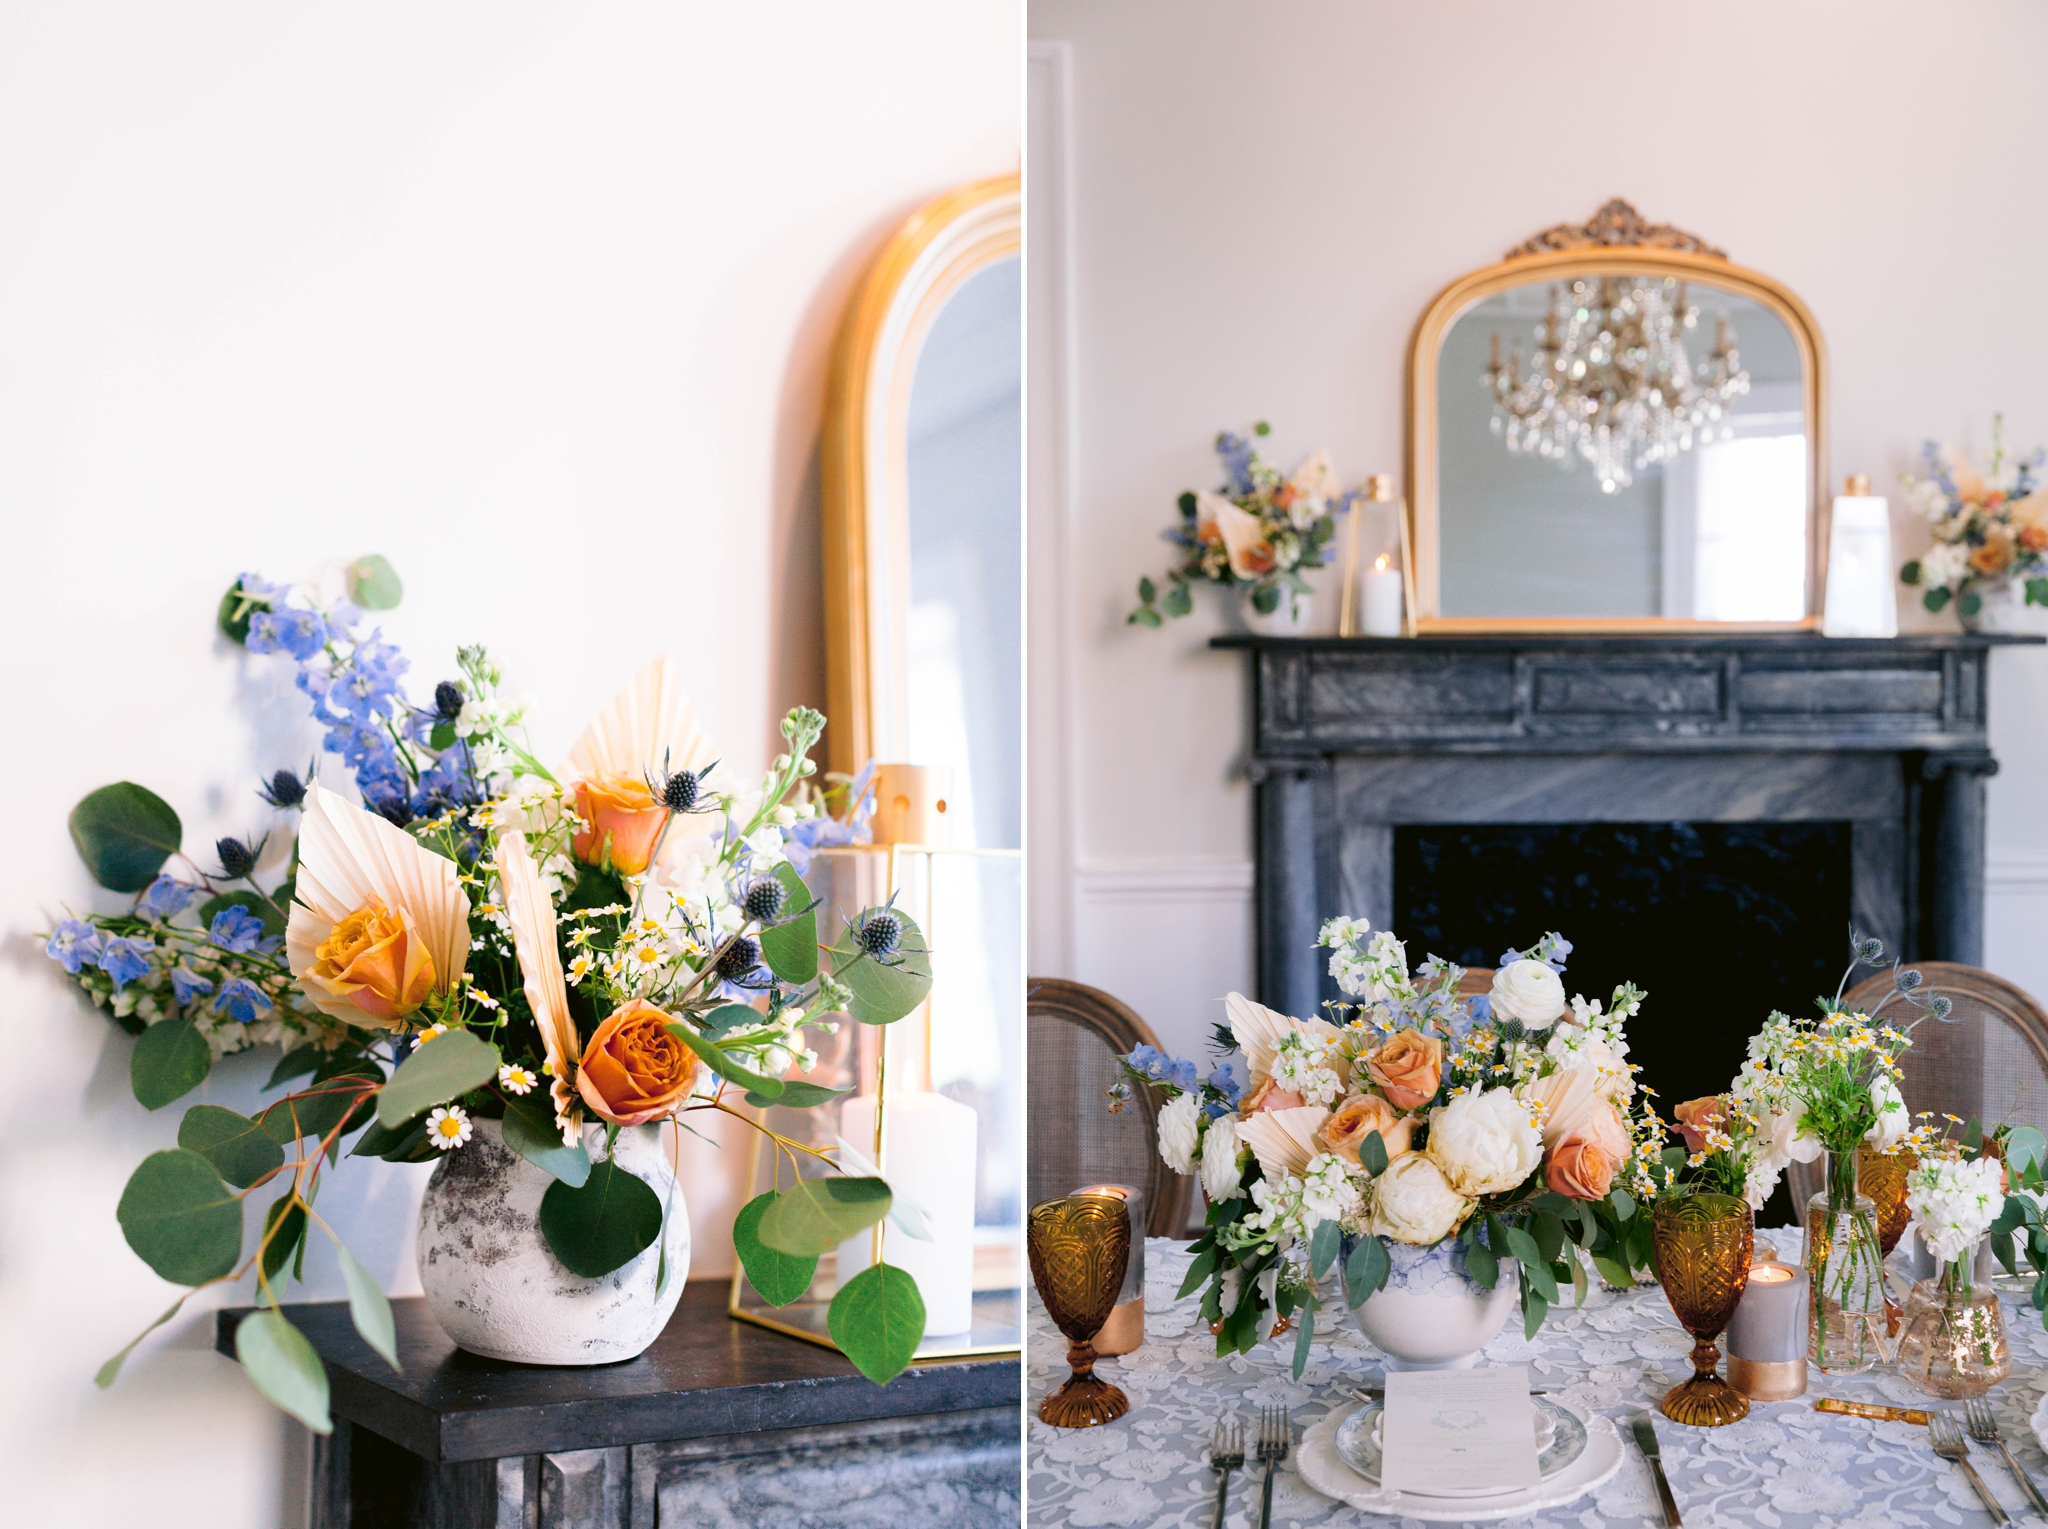 Marble fire place in old estate decorated - Table Set up with white and blue tablecloth, white and pastel china and pastel flowers - martha stewart weddings - style me pretty - Dusty Blue Wedding Inspiration - fine art photography - Honolulu, Oahu, Hawaii Wedding Photographer - johanna dye